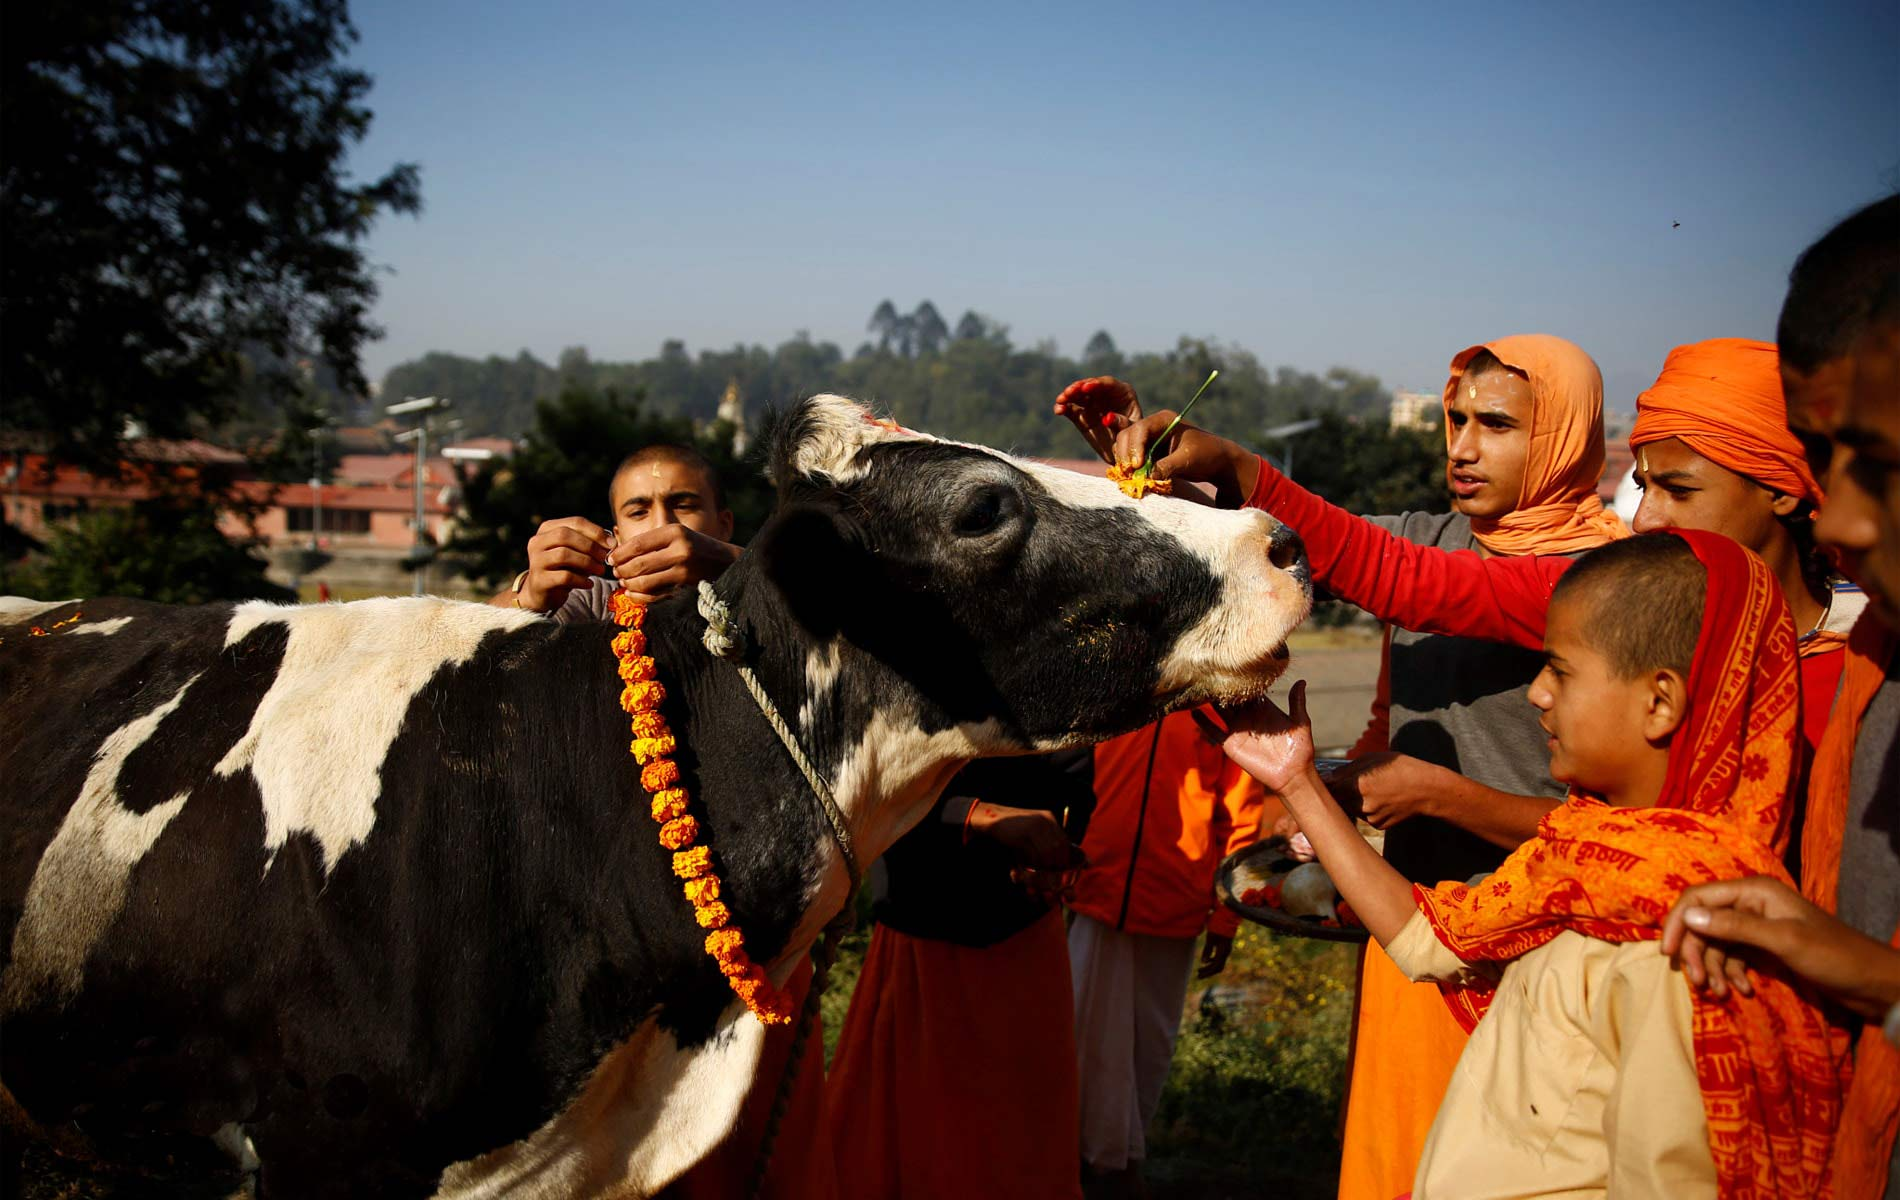 People worshiping cow with different offerings